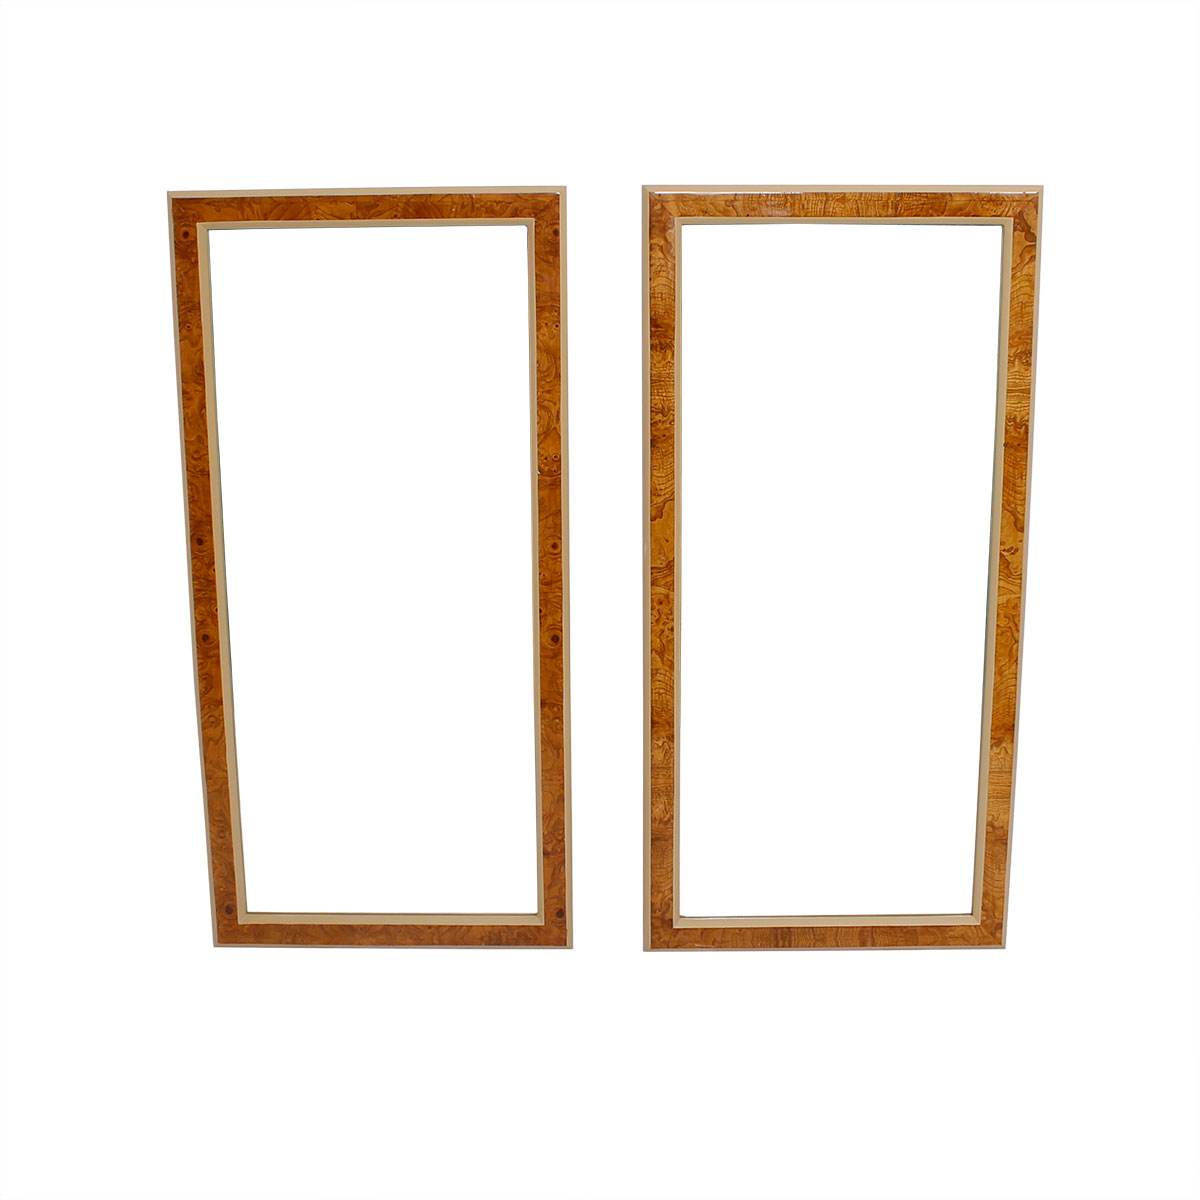 Pair of Mid Century Burled Wood Accented Wall Mirrors